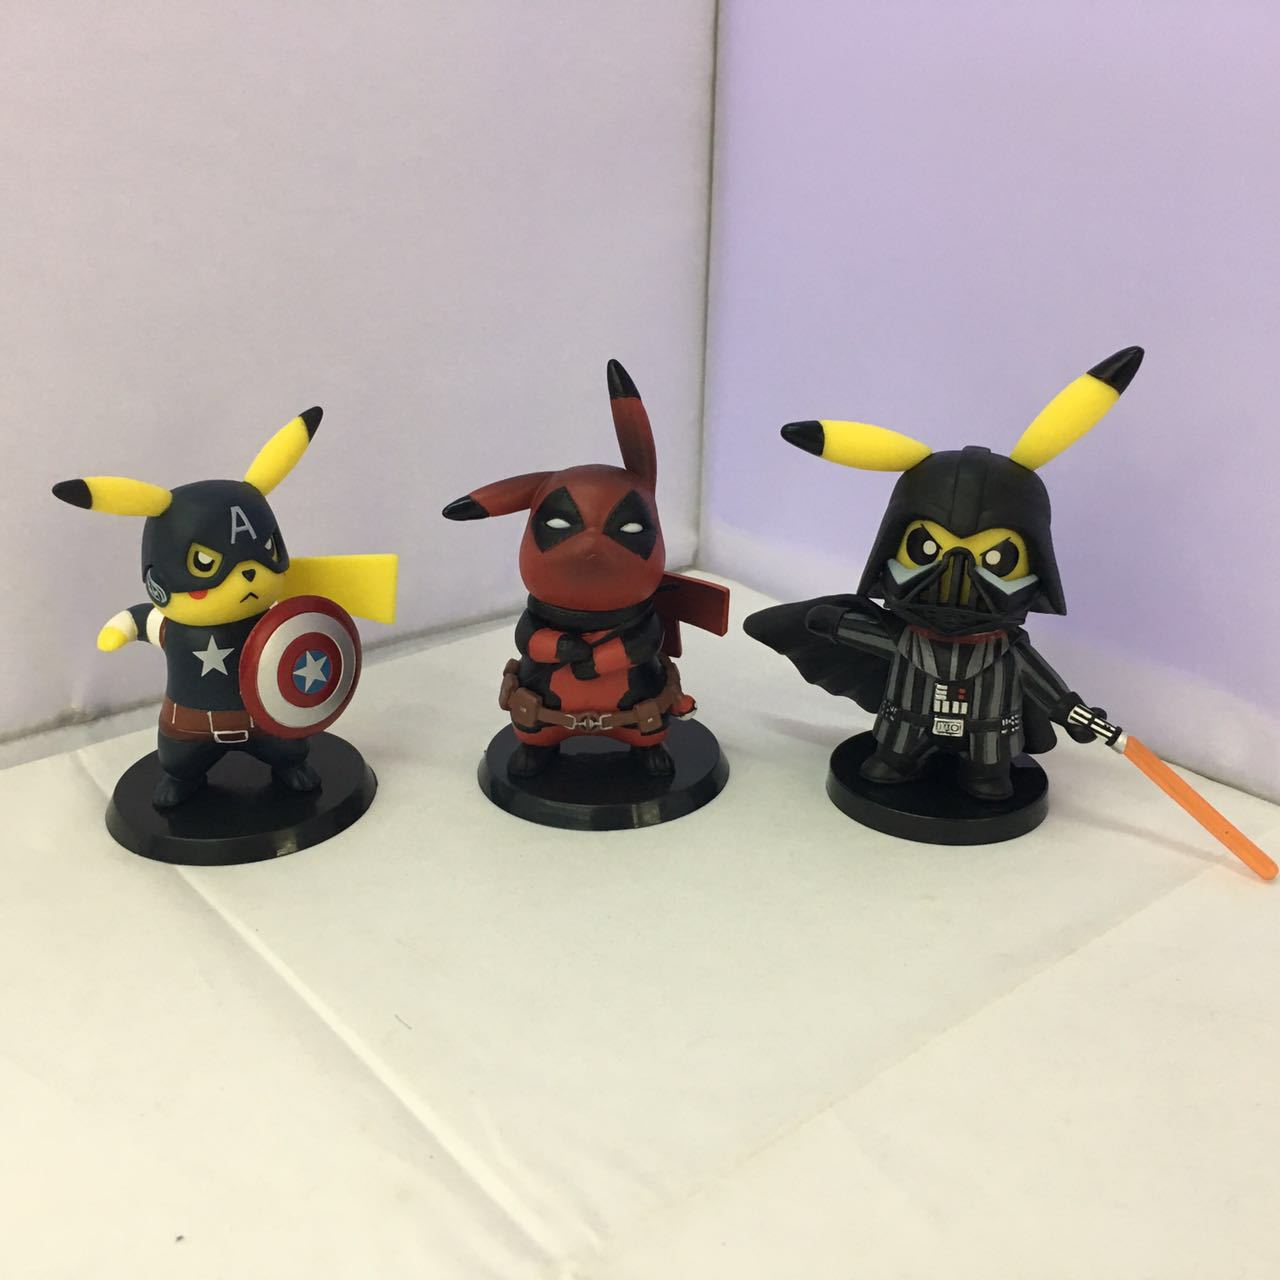 WVW 8-11CM Comic Hero Deadpool Pikachu DV Captain America Play Arts Model PVC Toy Action Figure Decoration For Collection Gift hot sale movie super cool deadpool action figure toy marvel deadpool display decoration doll collection children juguetes gift